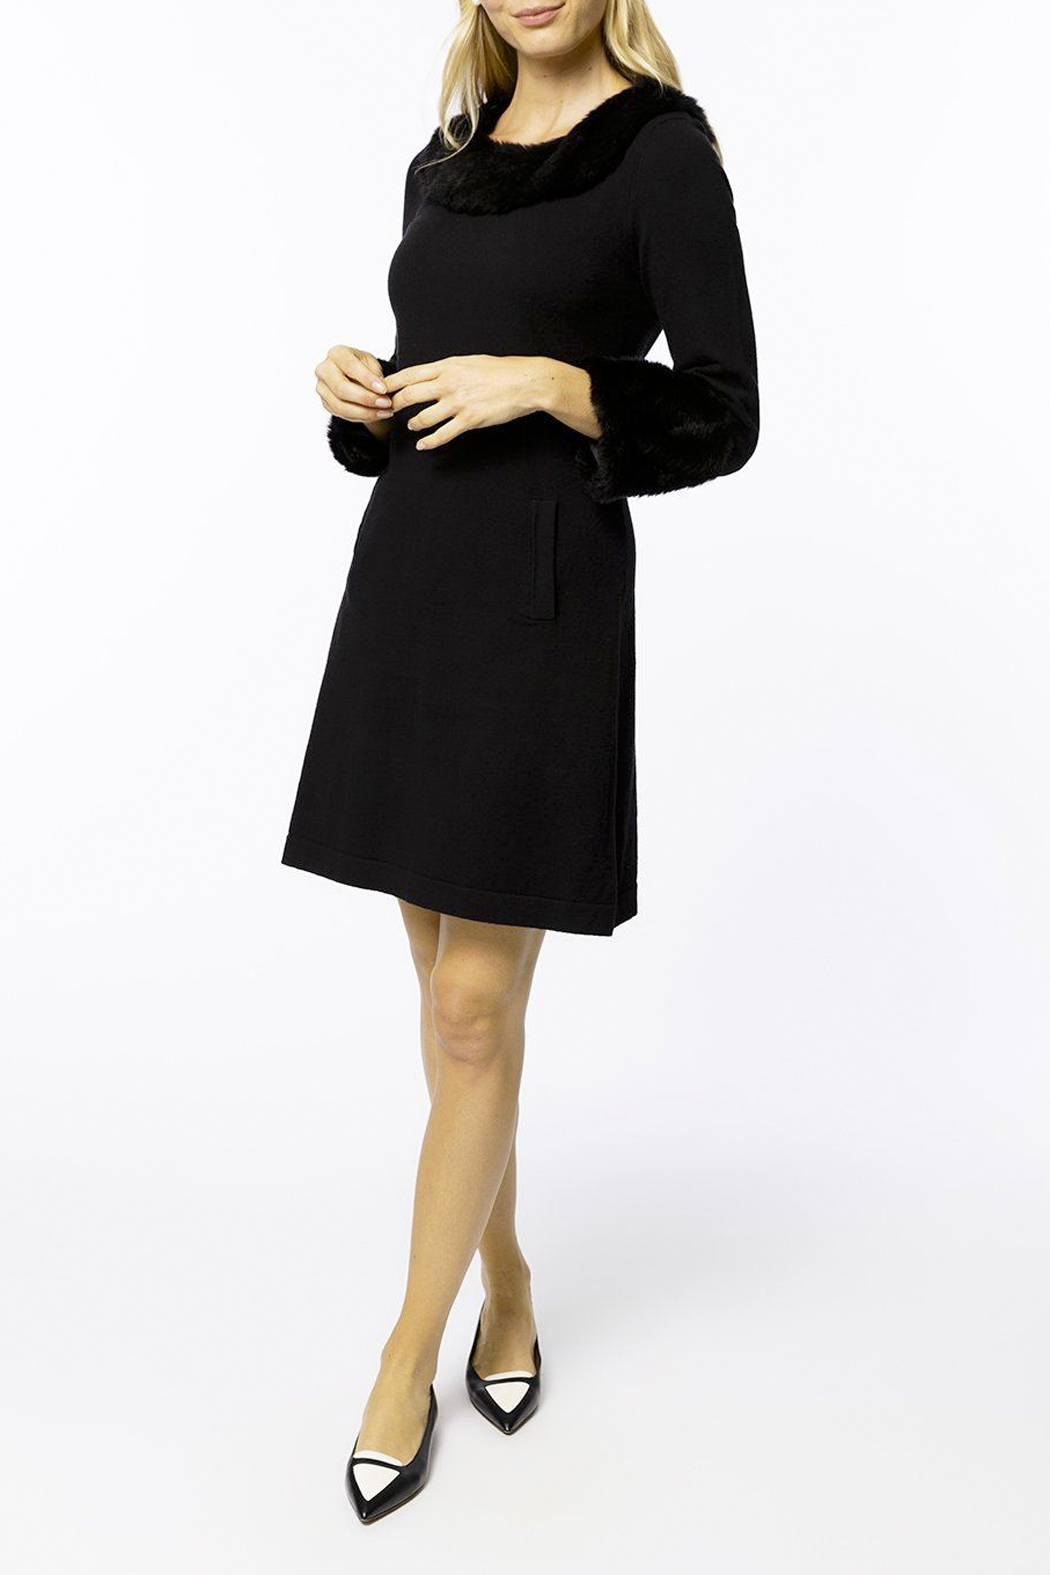 Tyler Boe Chelsey Cotton/Cashmere Dress with Faux Fur - Side Cropped Image